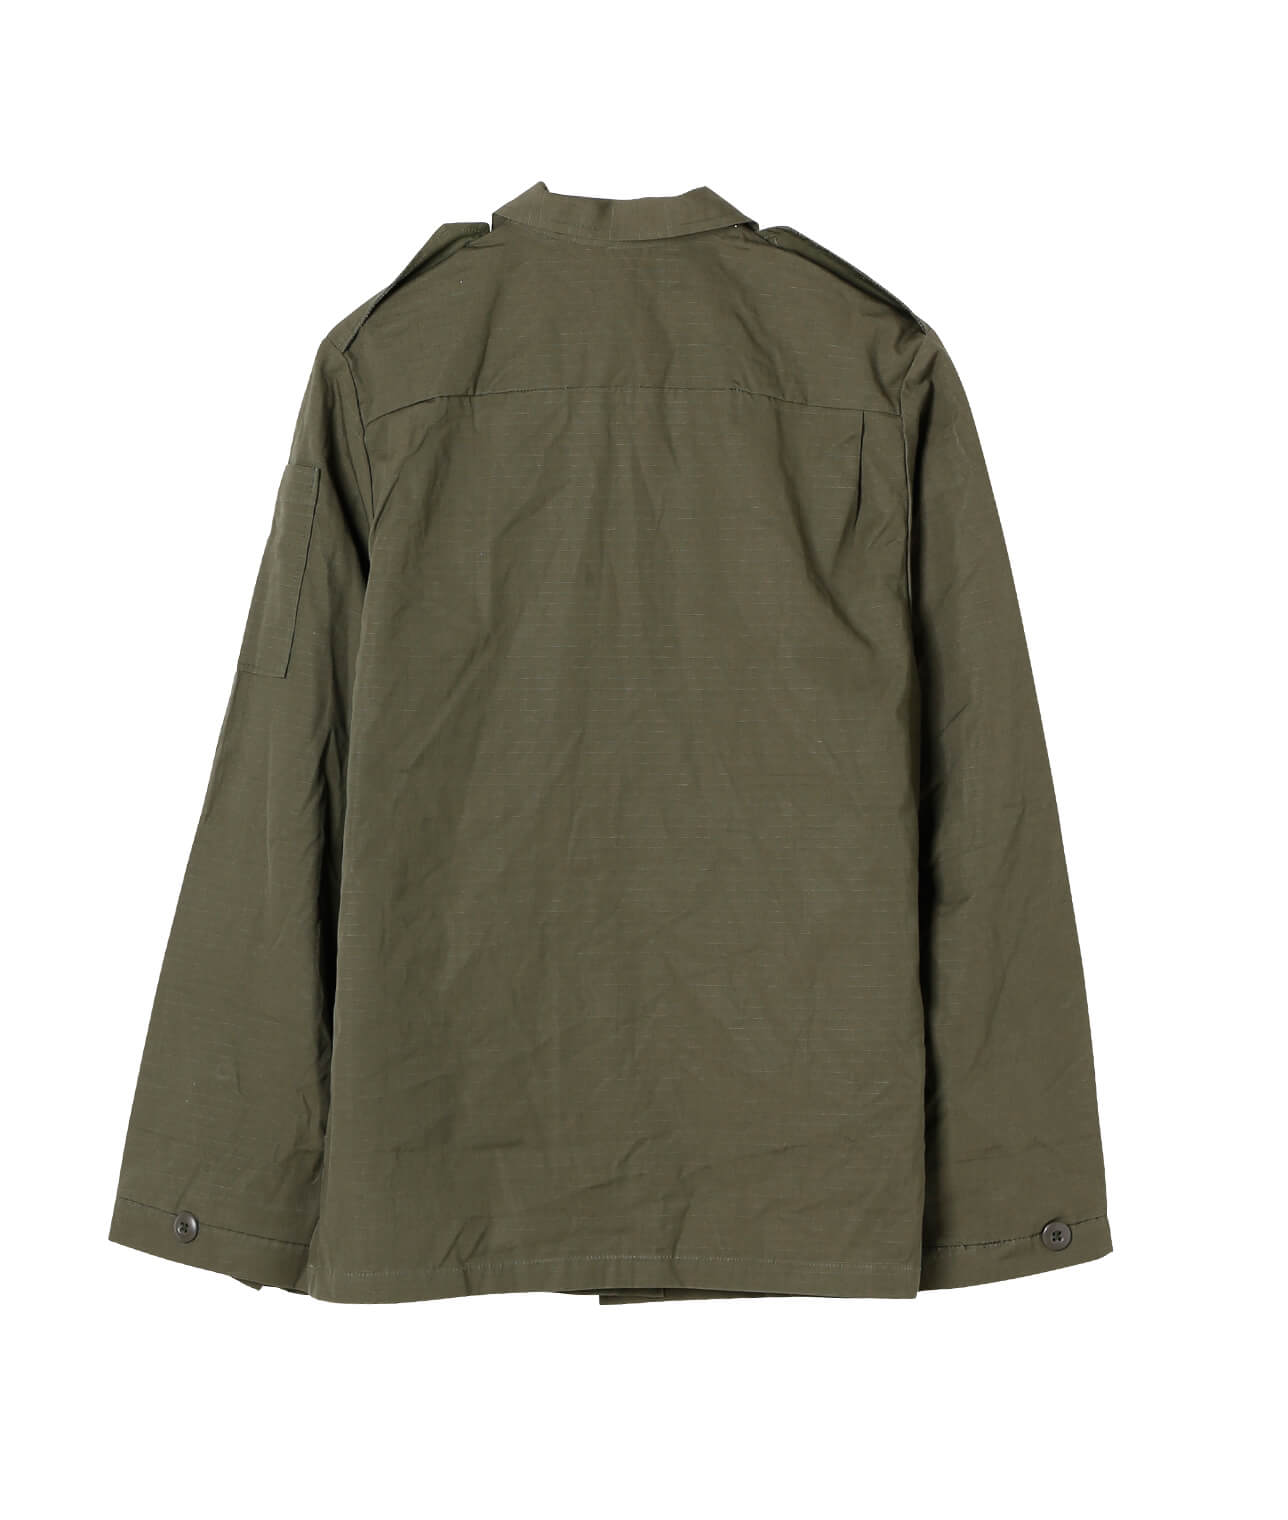 USED/US MILITARY W's RIPS TOP SHIRT DEAD STOCK 詳細画像 カーキ 2